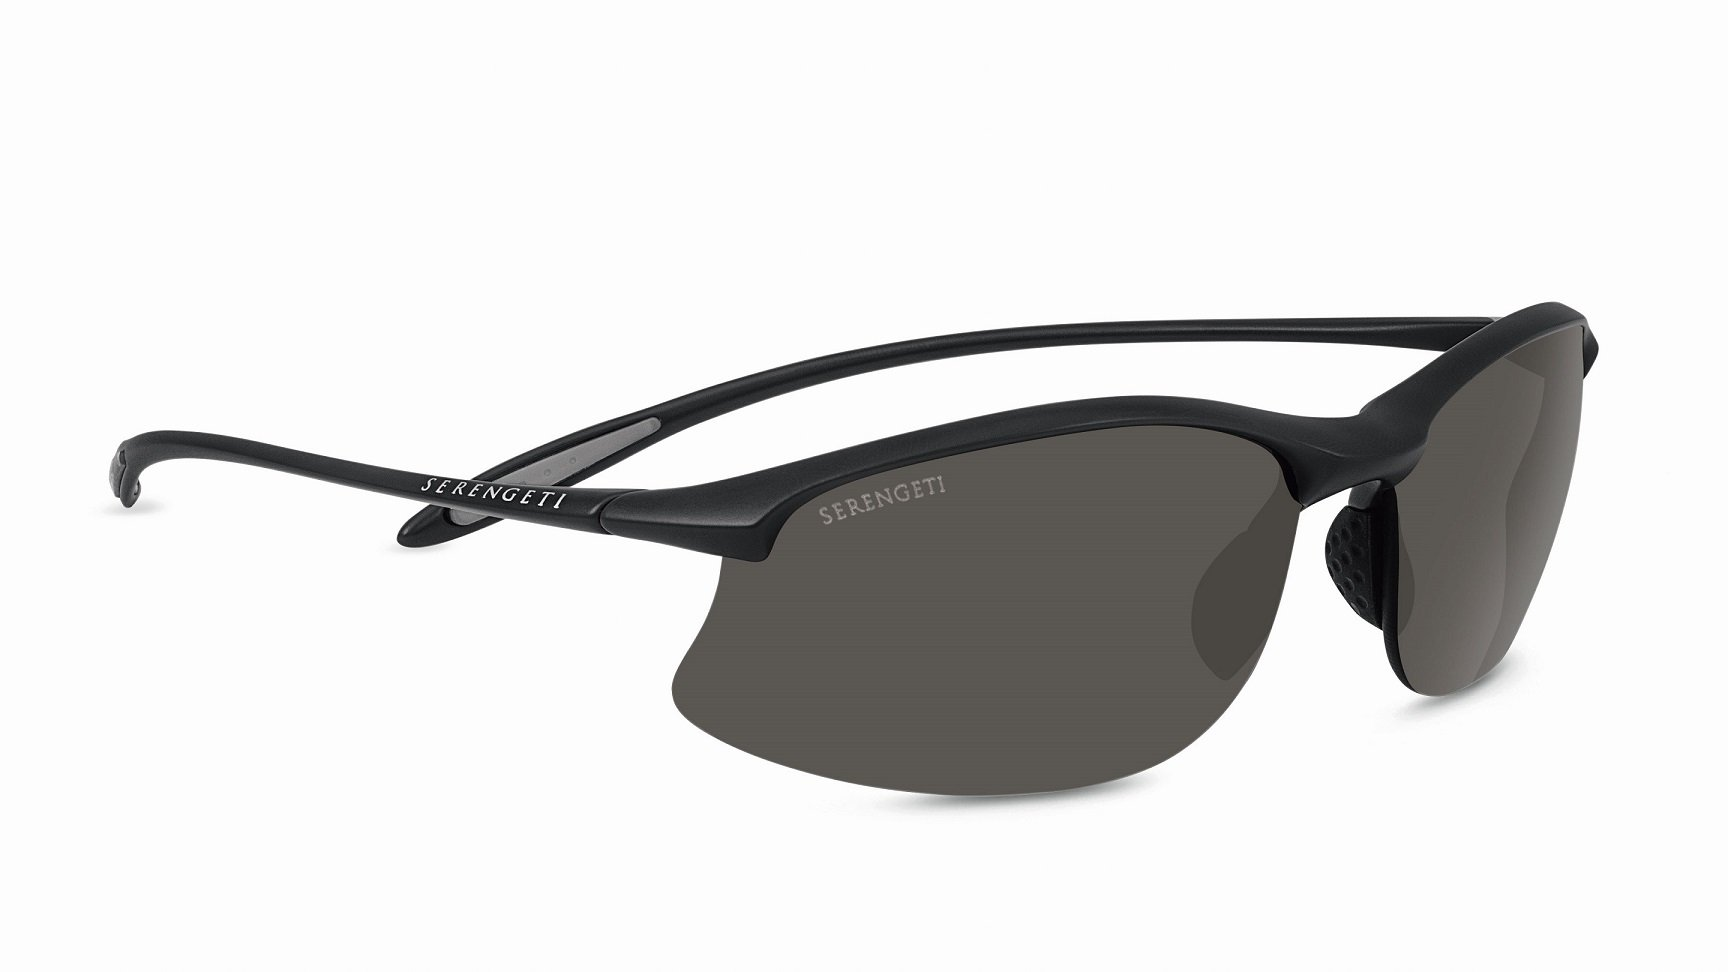 Serengeti Maestrale Polar Sunglasses,Satin Black with CPG Lenses by Serengeti